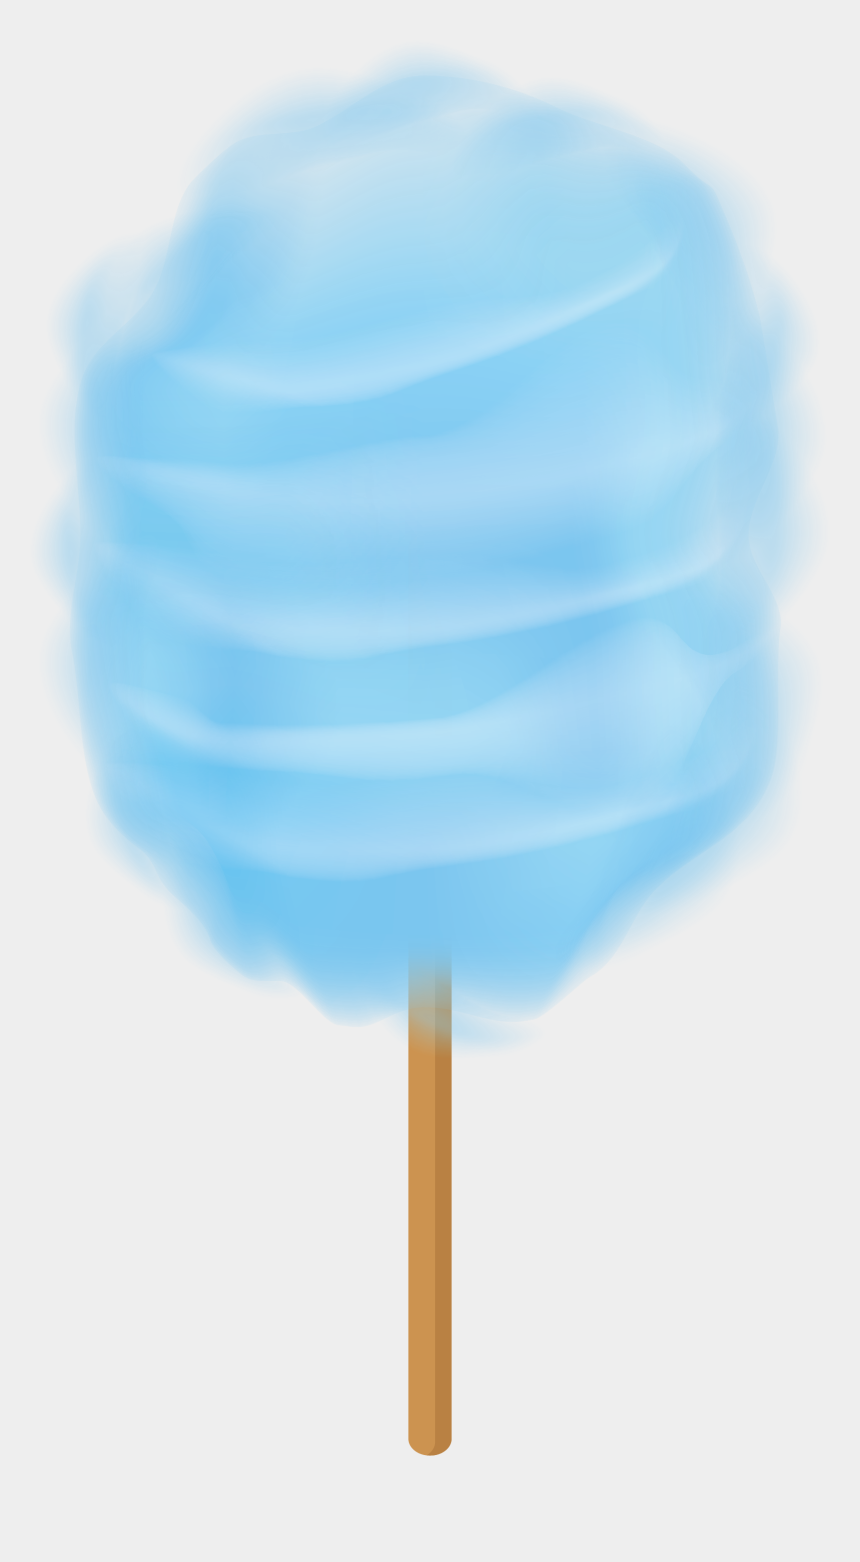 cotton candy machine clipart, Cartoons - Cotton Candy Png Pic